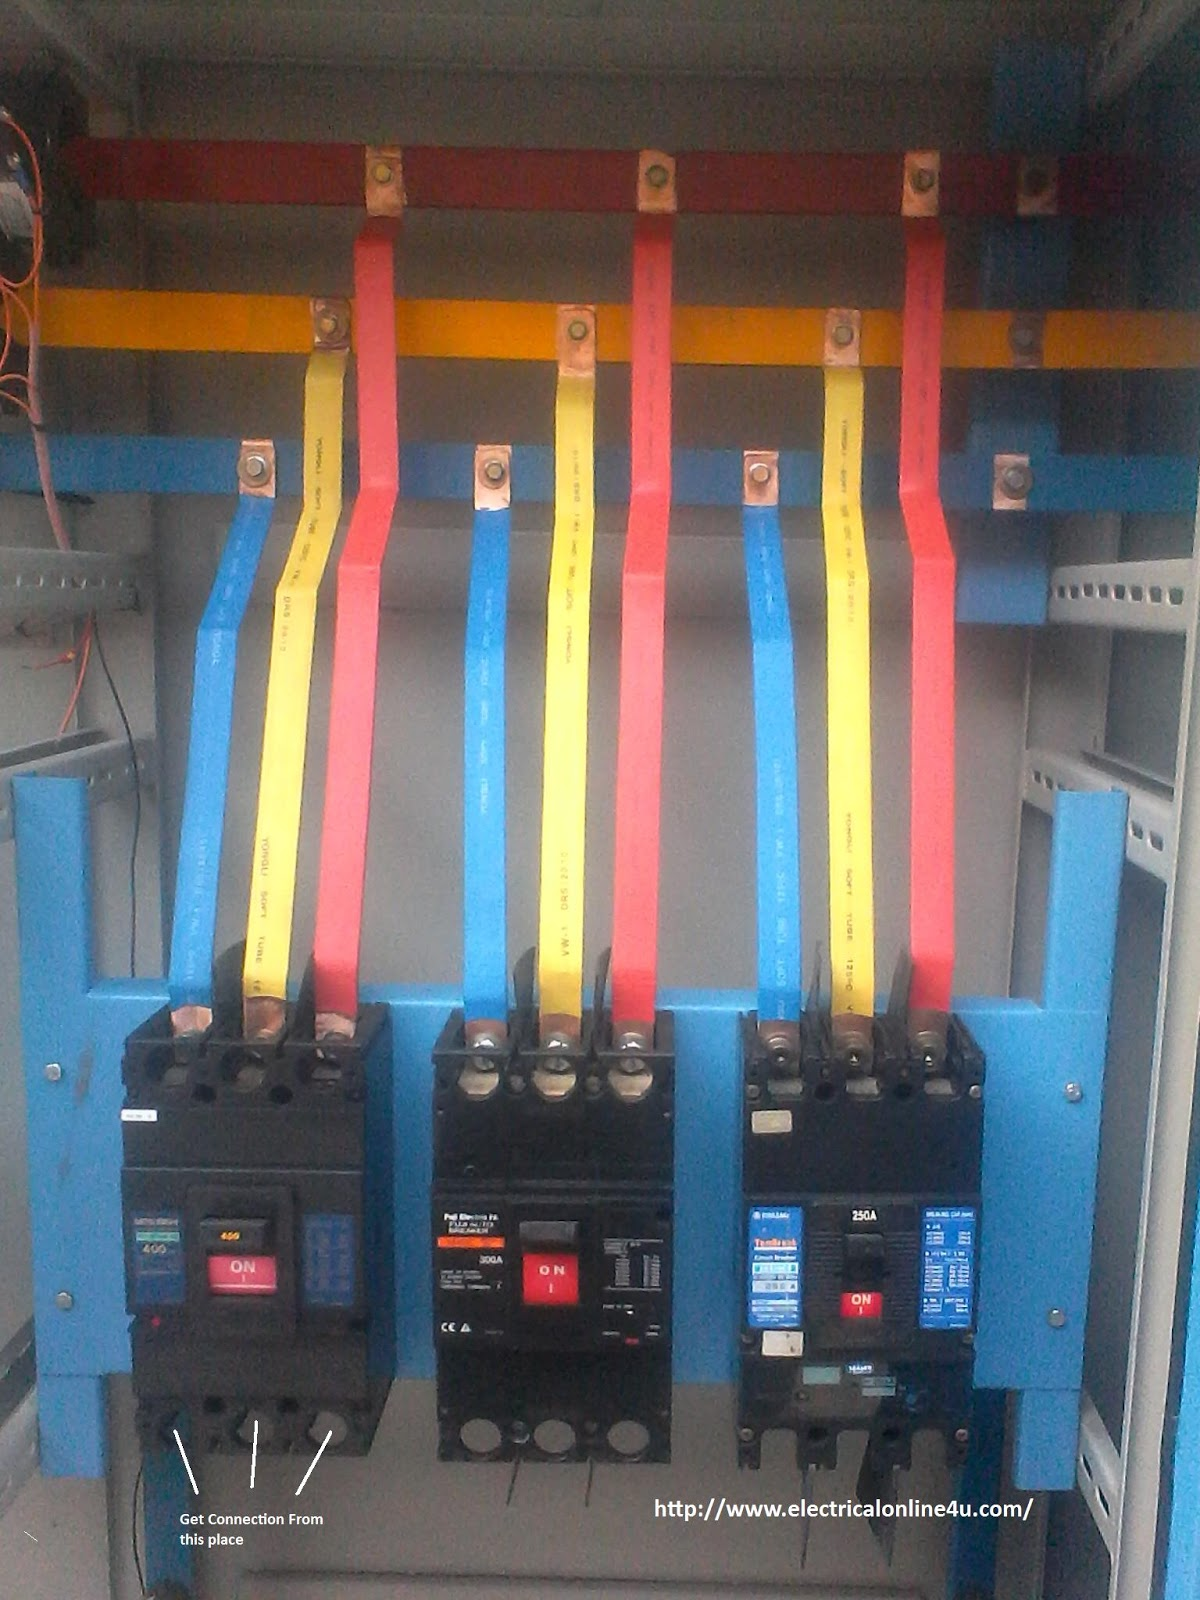 Circuit%2BBreaker%2BInstallation%2BFor%2BThree%2BPhase%2BSupply circuit breaker installation for three phase supply 3 phase 3 phase electrical panel diagram at gsmx.co